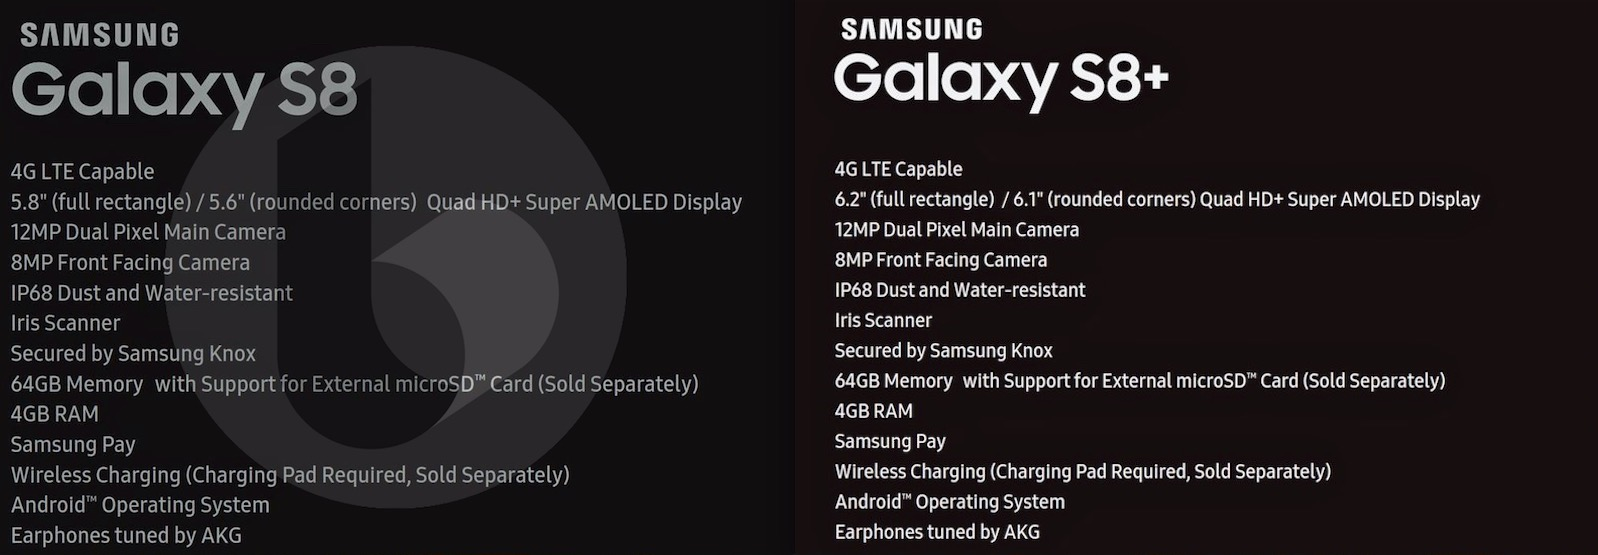 galaxy-s8-specs-compared